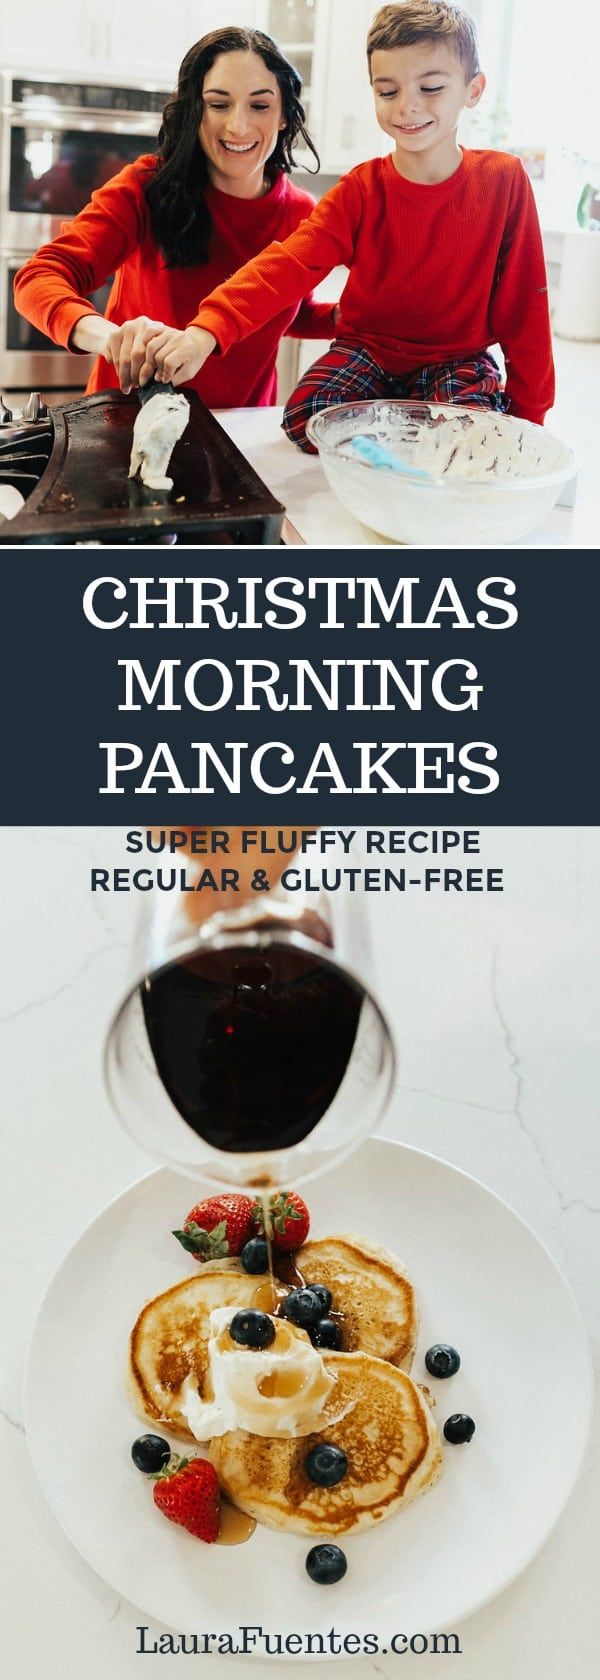 Holiday weekends call for lots of coffee, laughs, and pancakes! Mostly, pancakes. You can find the original, and gluten-free pancake batter recipe is this post. They are the best, fluffy pancakes you'll ever eat.